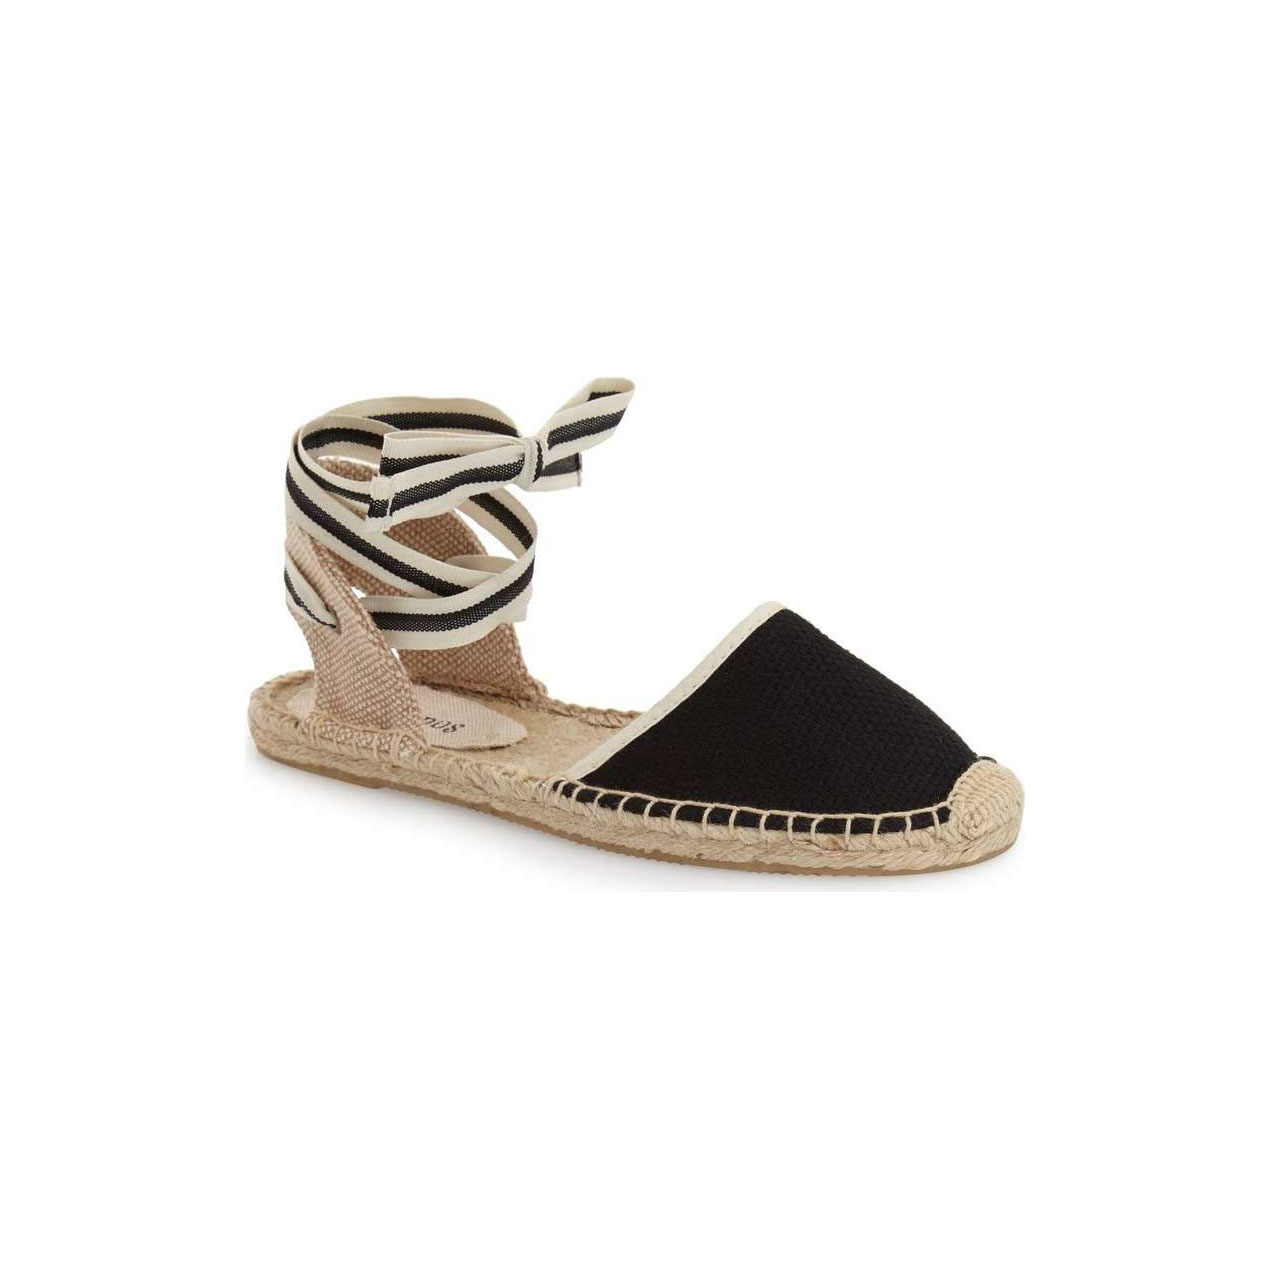 Black and White Espadrille Sandal